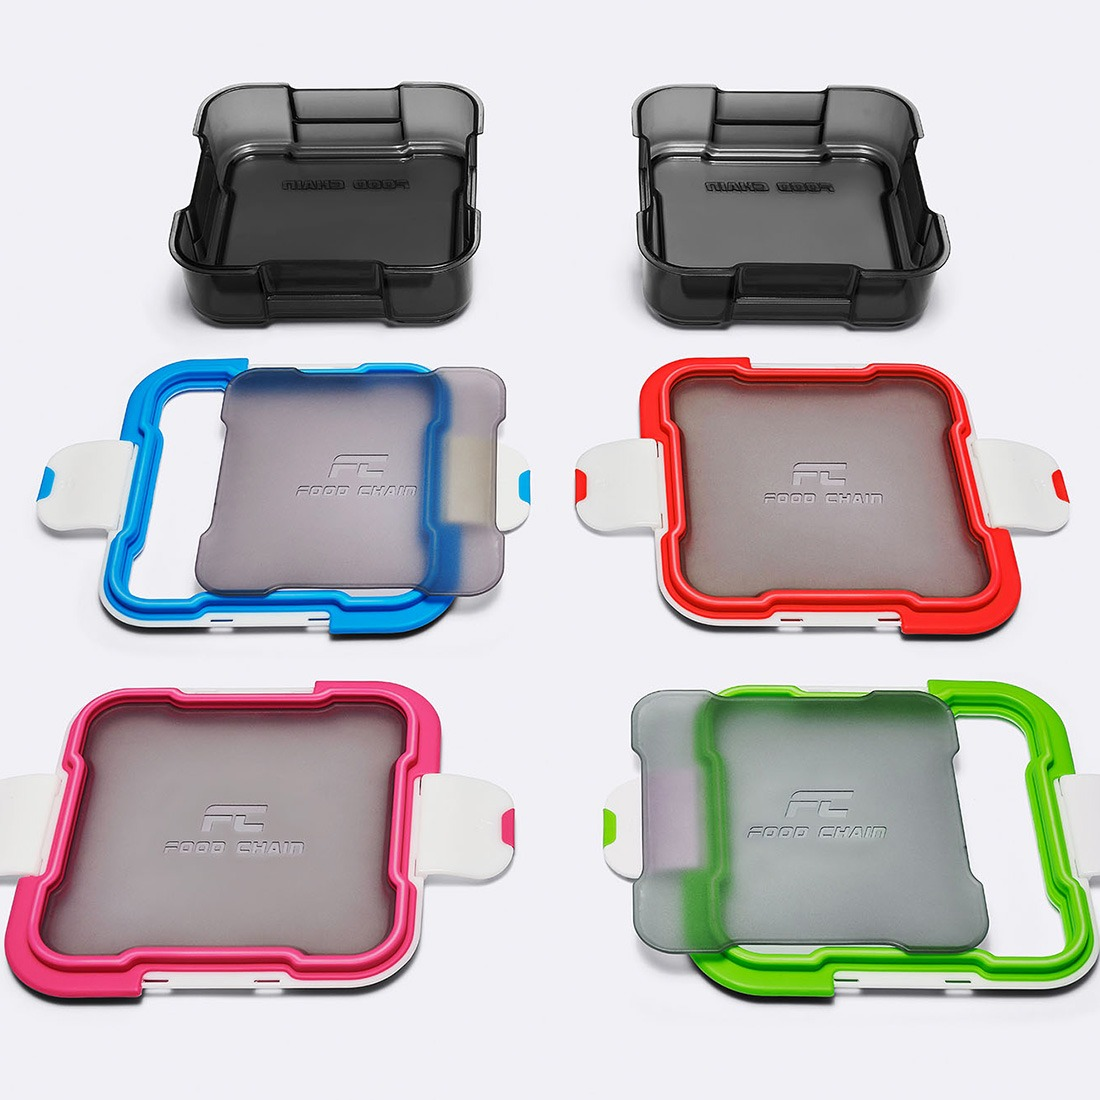 Food Chain food storage 3d printing product design and development